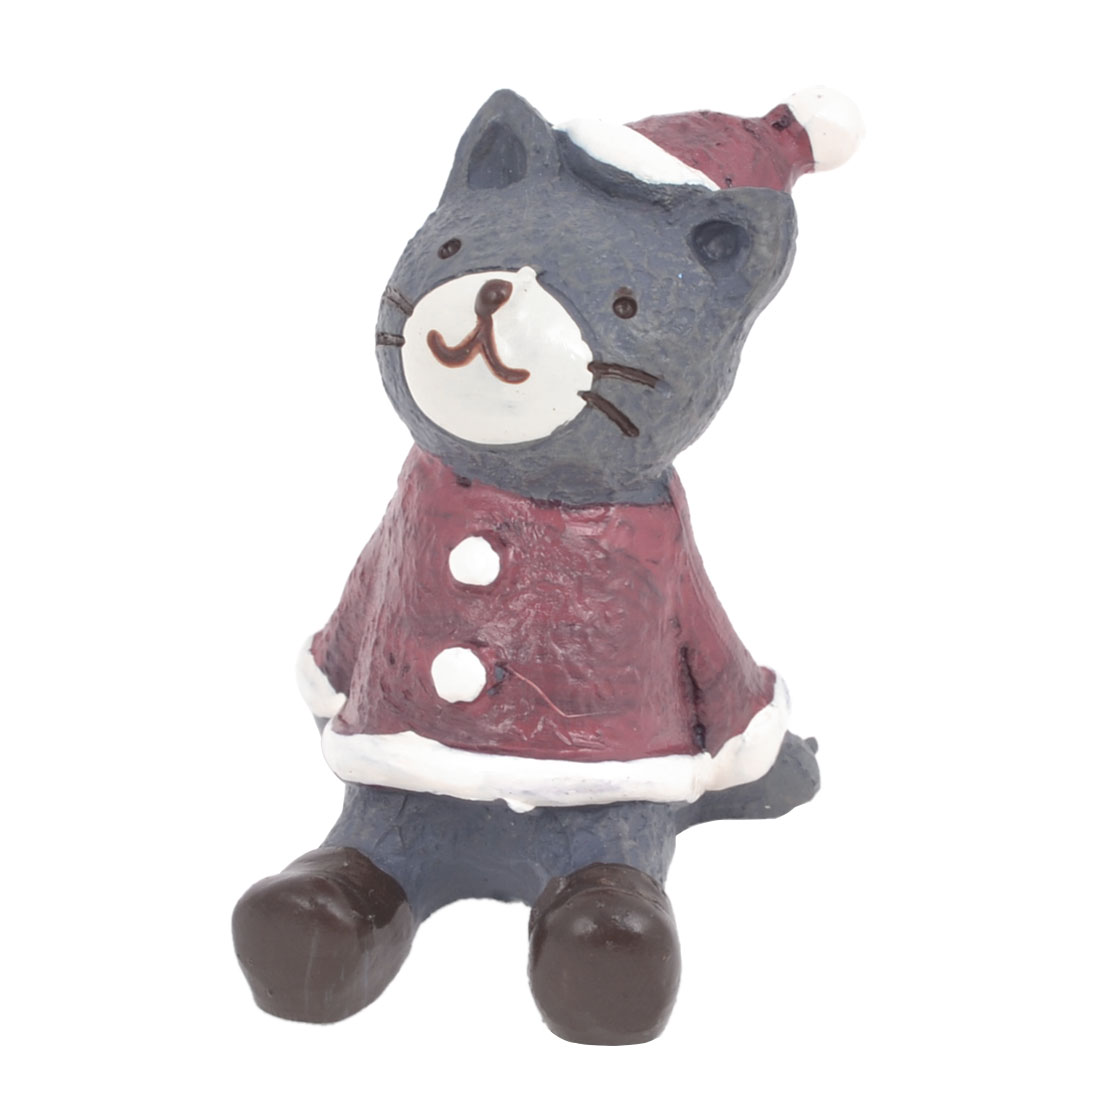 Office Red Gray Resin Handicraft Emulational Sitting Cat Animal Ornament